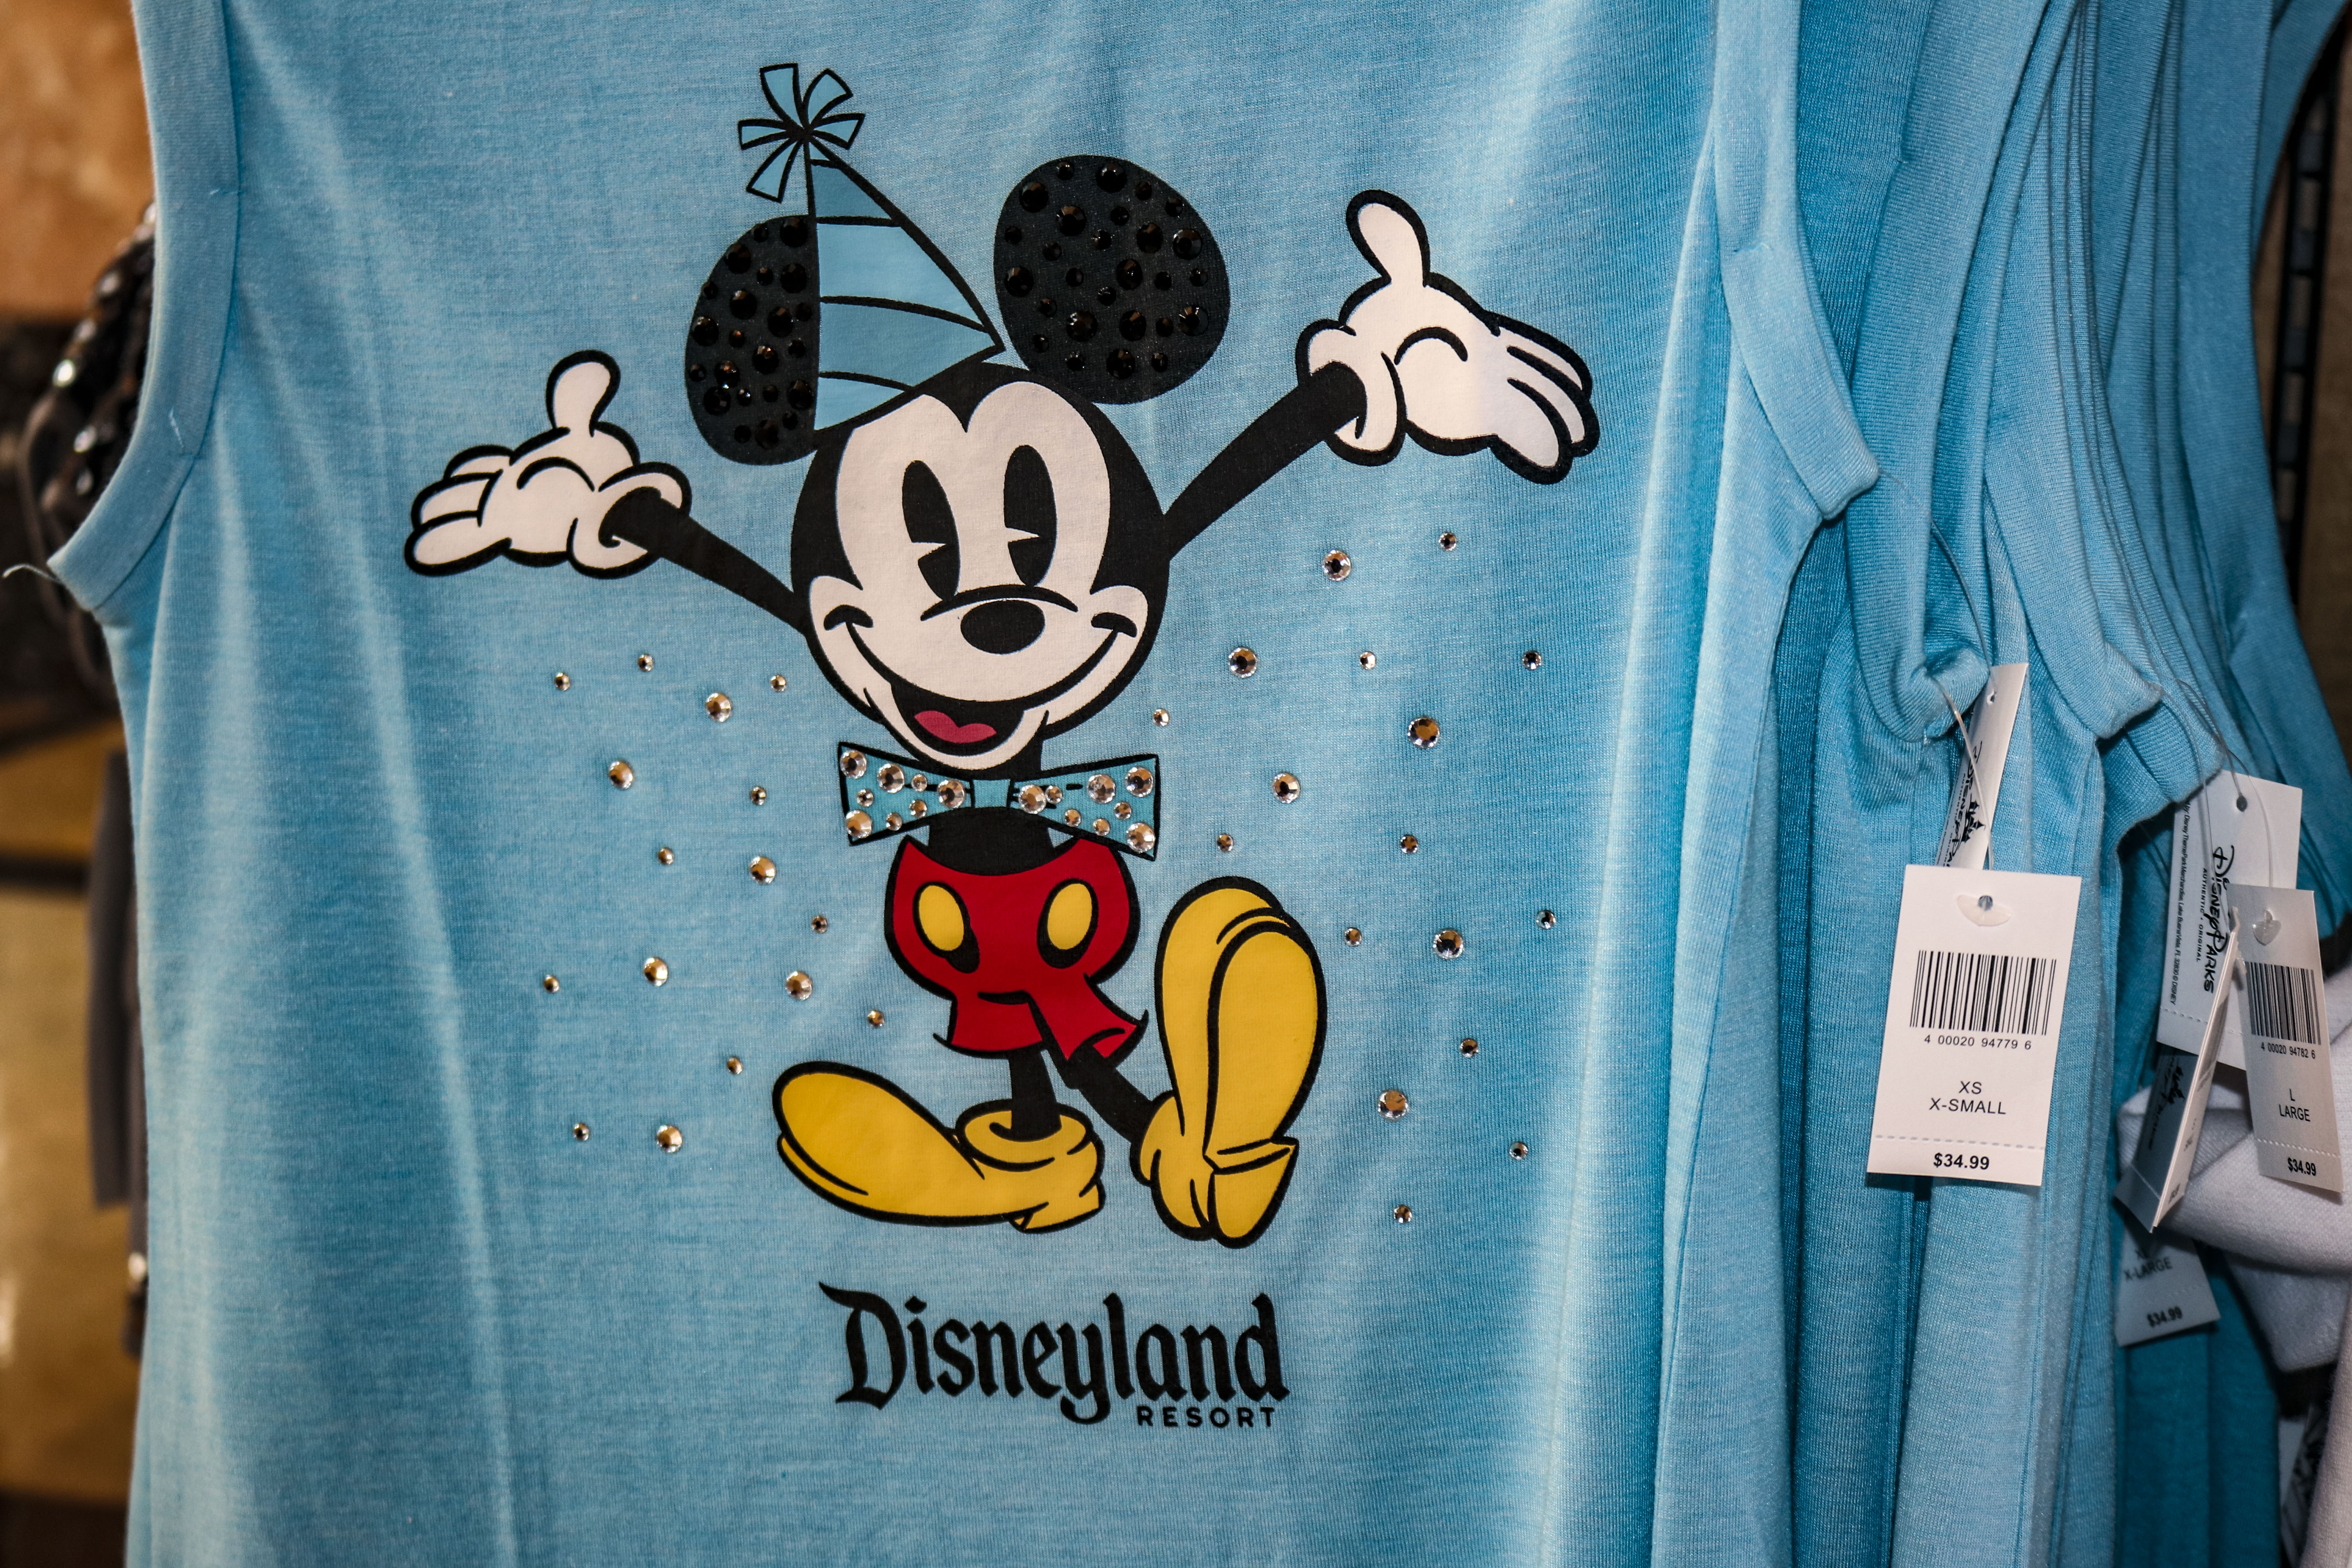 This Collection Has A Wide Assortment Of Colorful T Shirts Hoodies And Outerwear All Featuring The Same Mickey Mouse 90 Design Mickeys Dapper Birthday